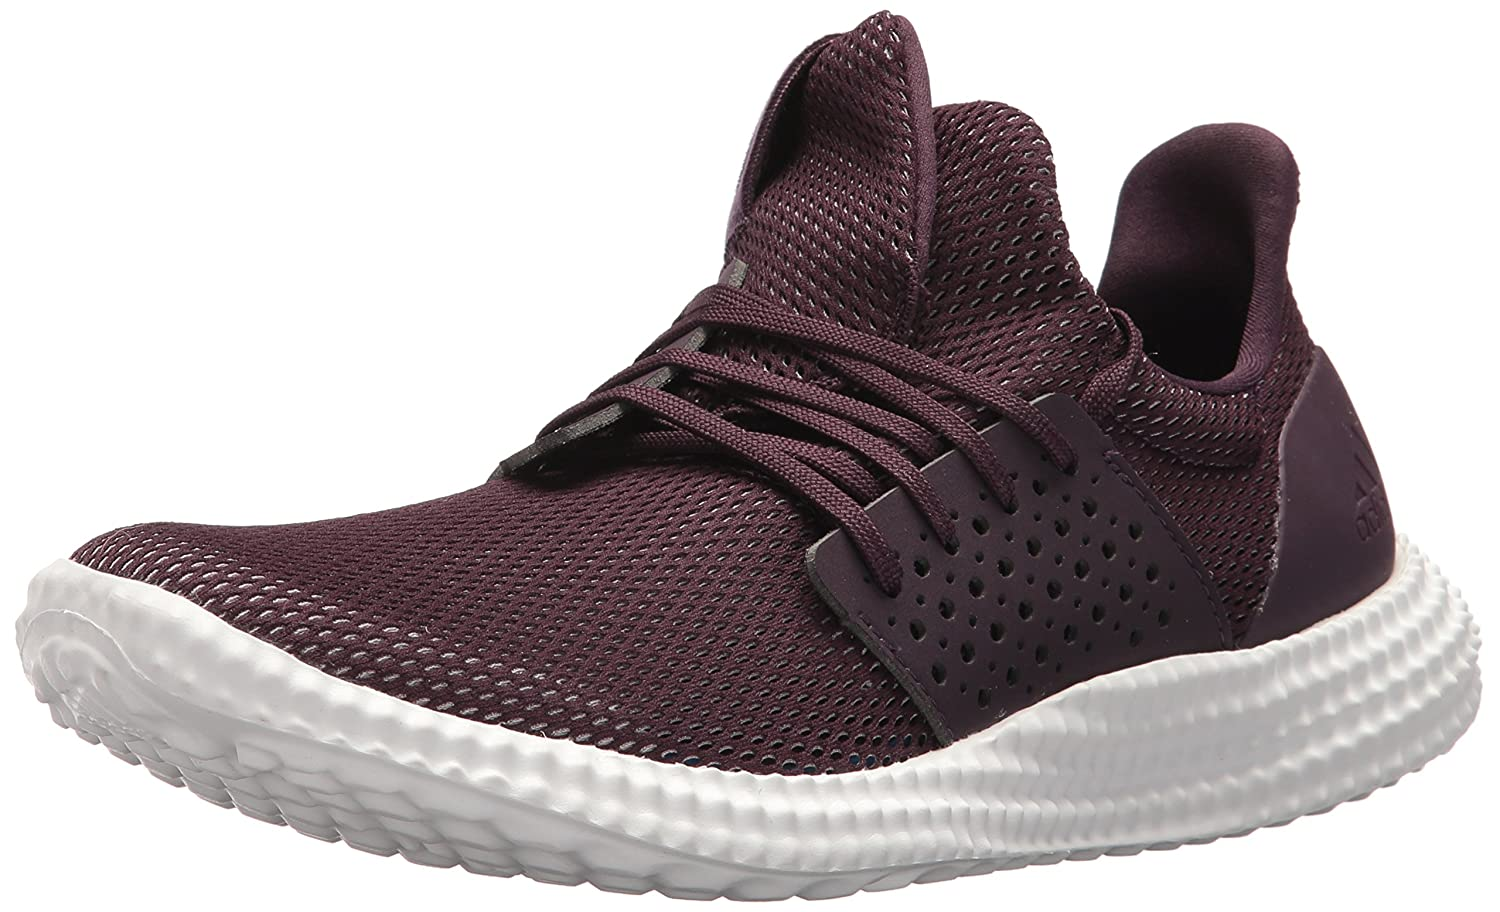 adidas Women's Athletics 24/7 Tr M Cross Trainer B07234L5J8 11 M US|Noble Red/Noble Red/Crystal White